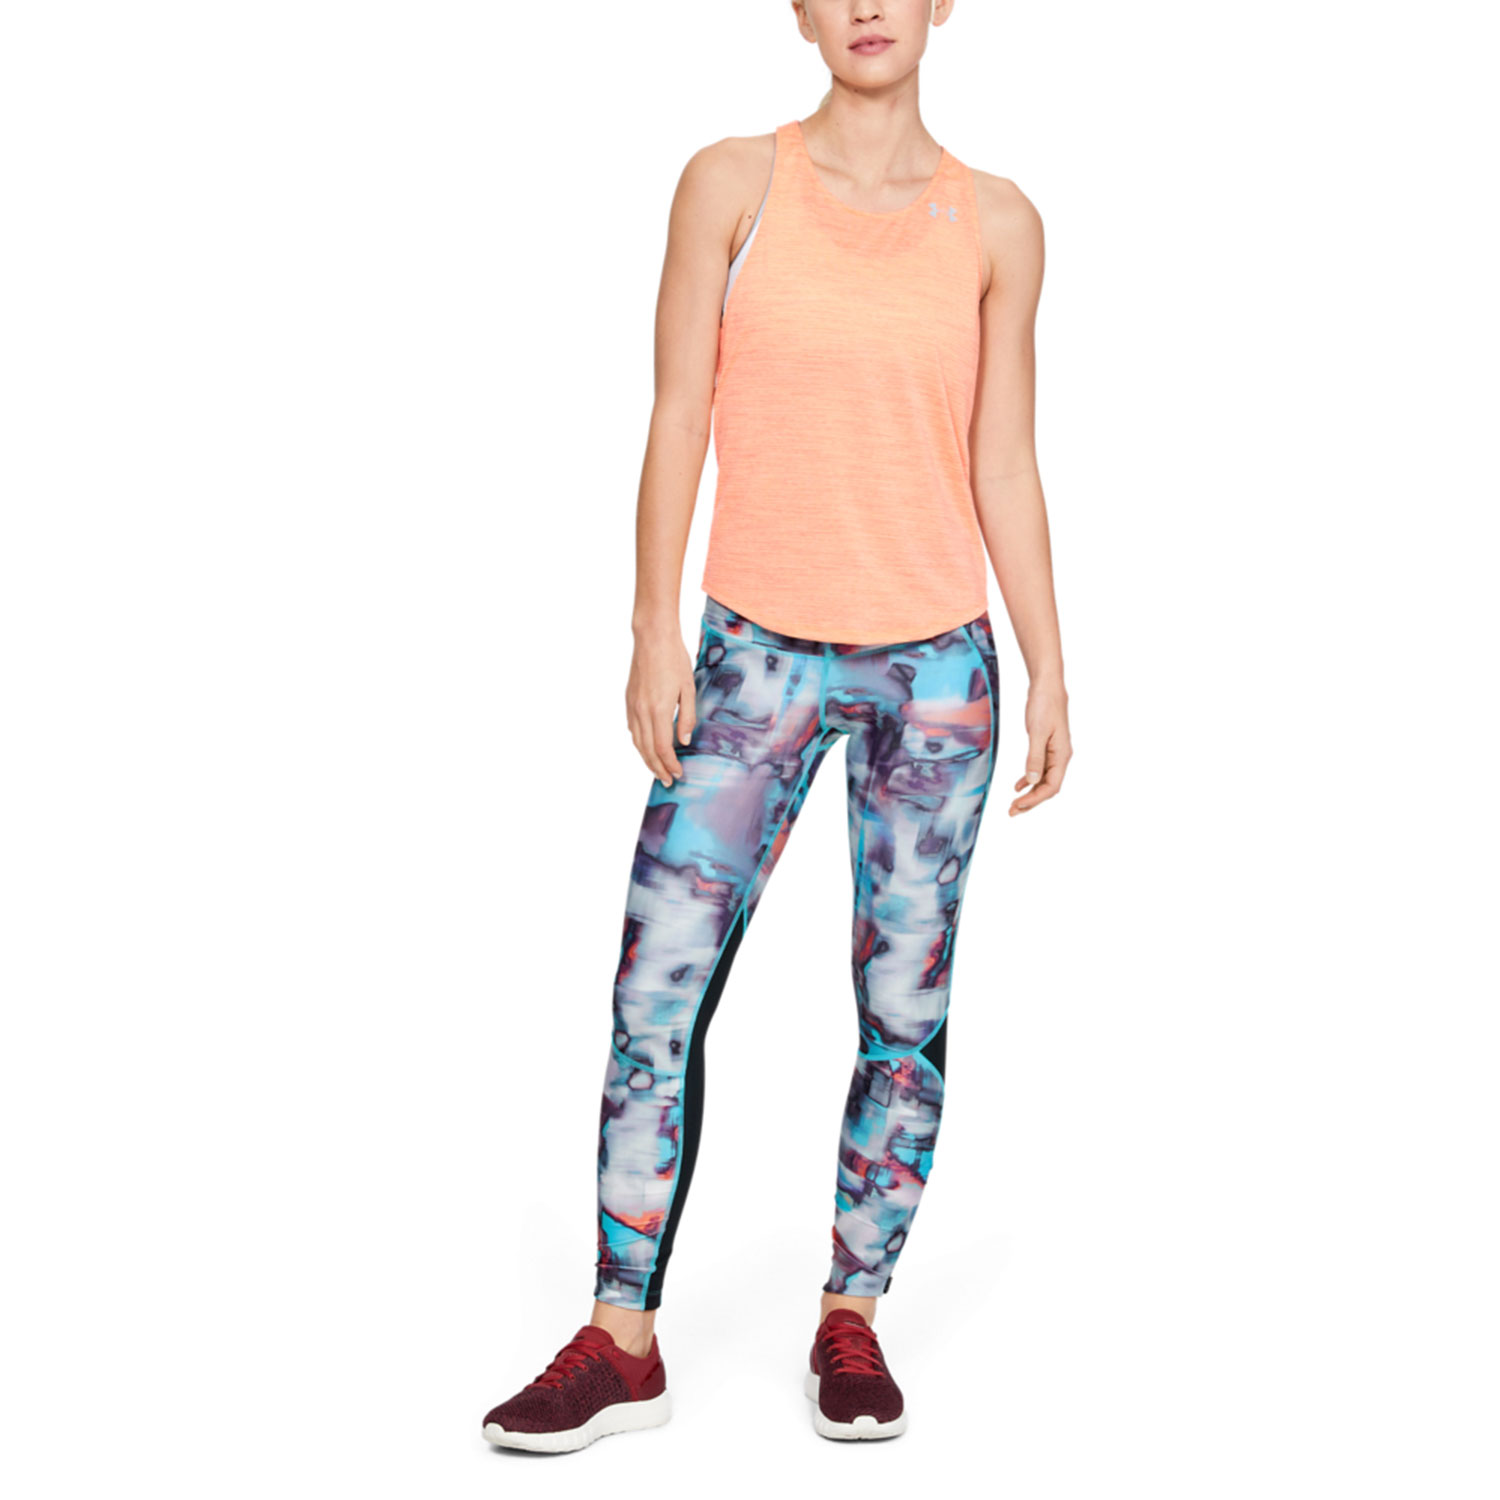 Under Armour Fly Fast Printed Tights - Black/Breathtaking Blue/Hyper Blur